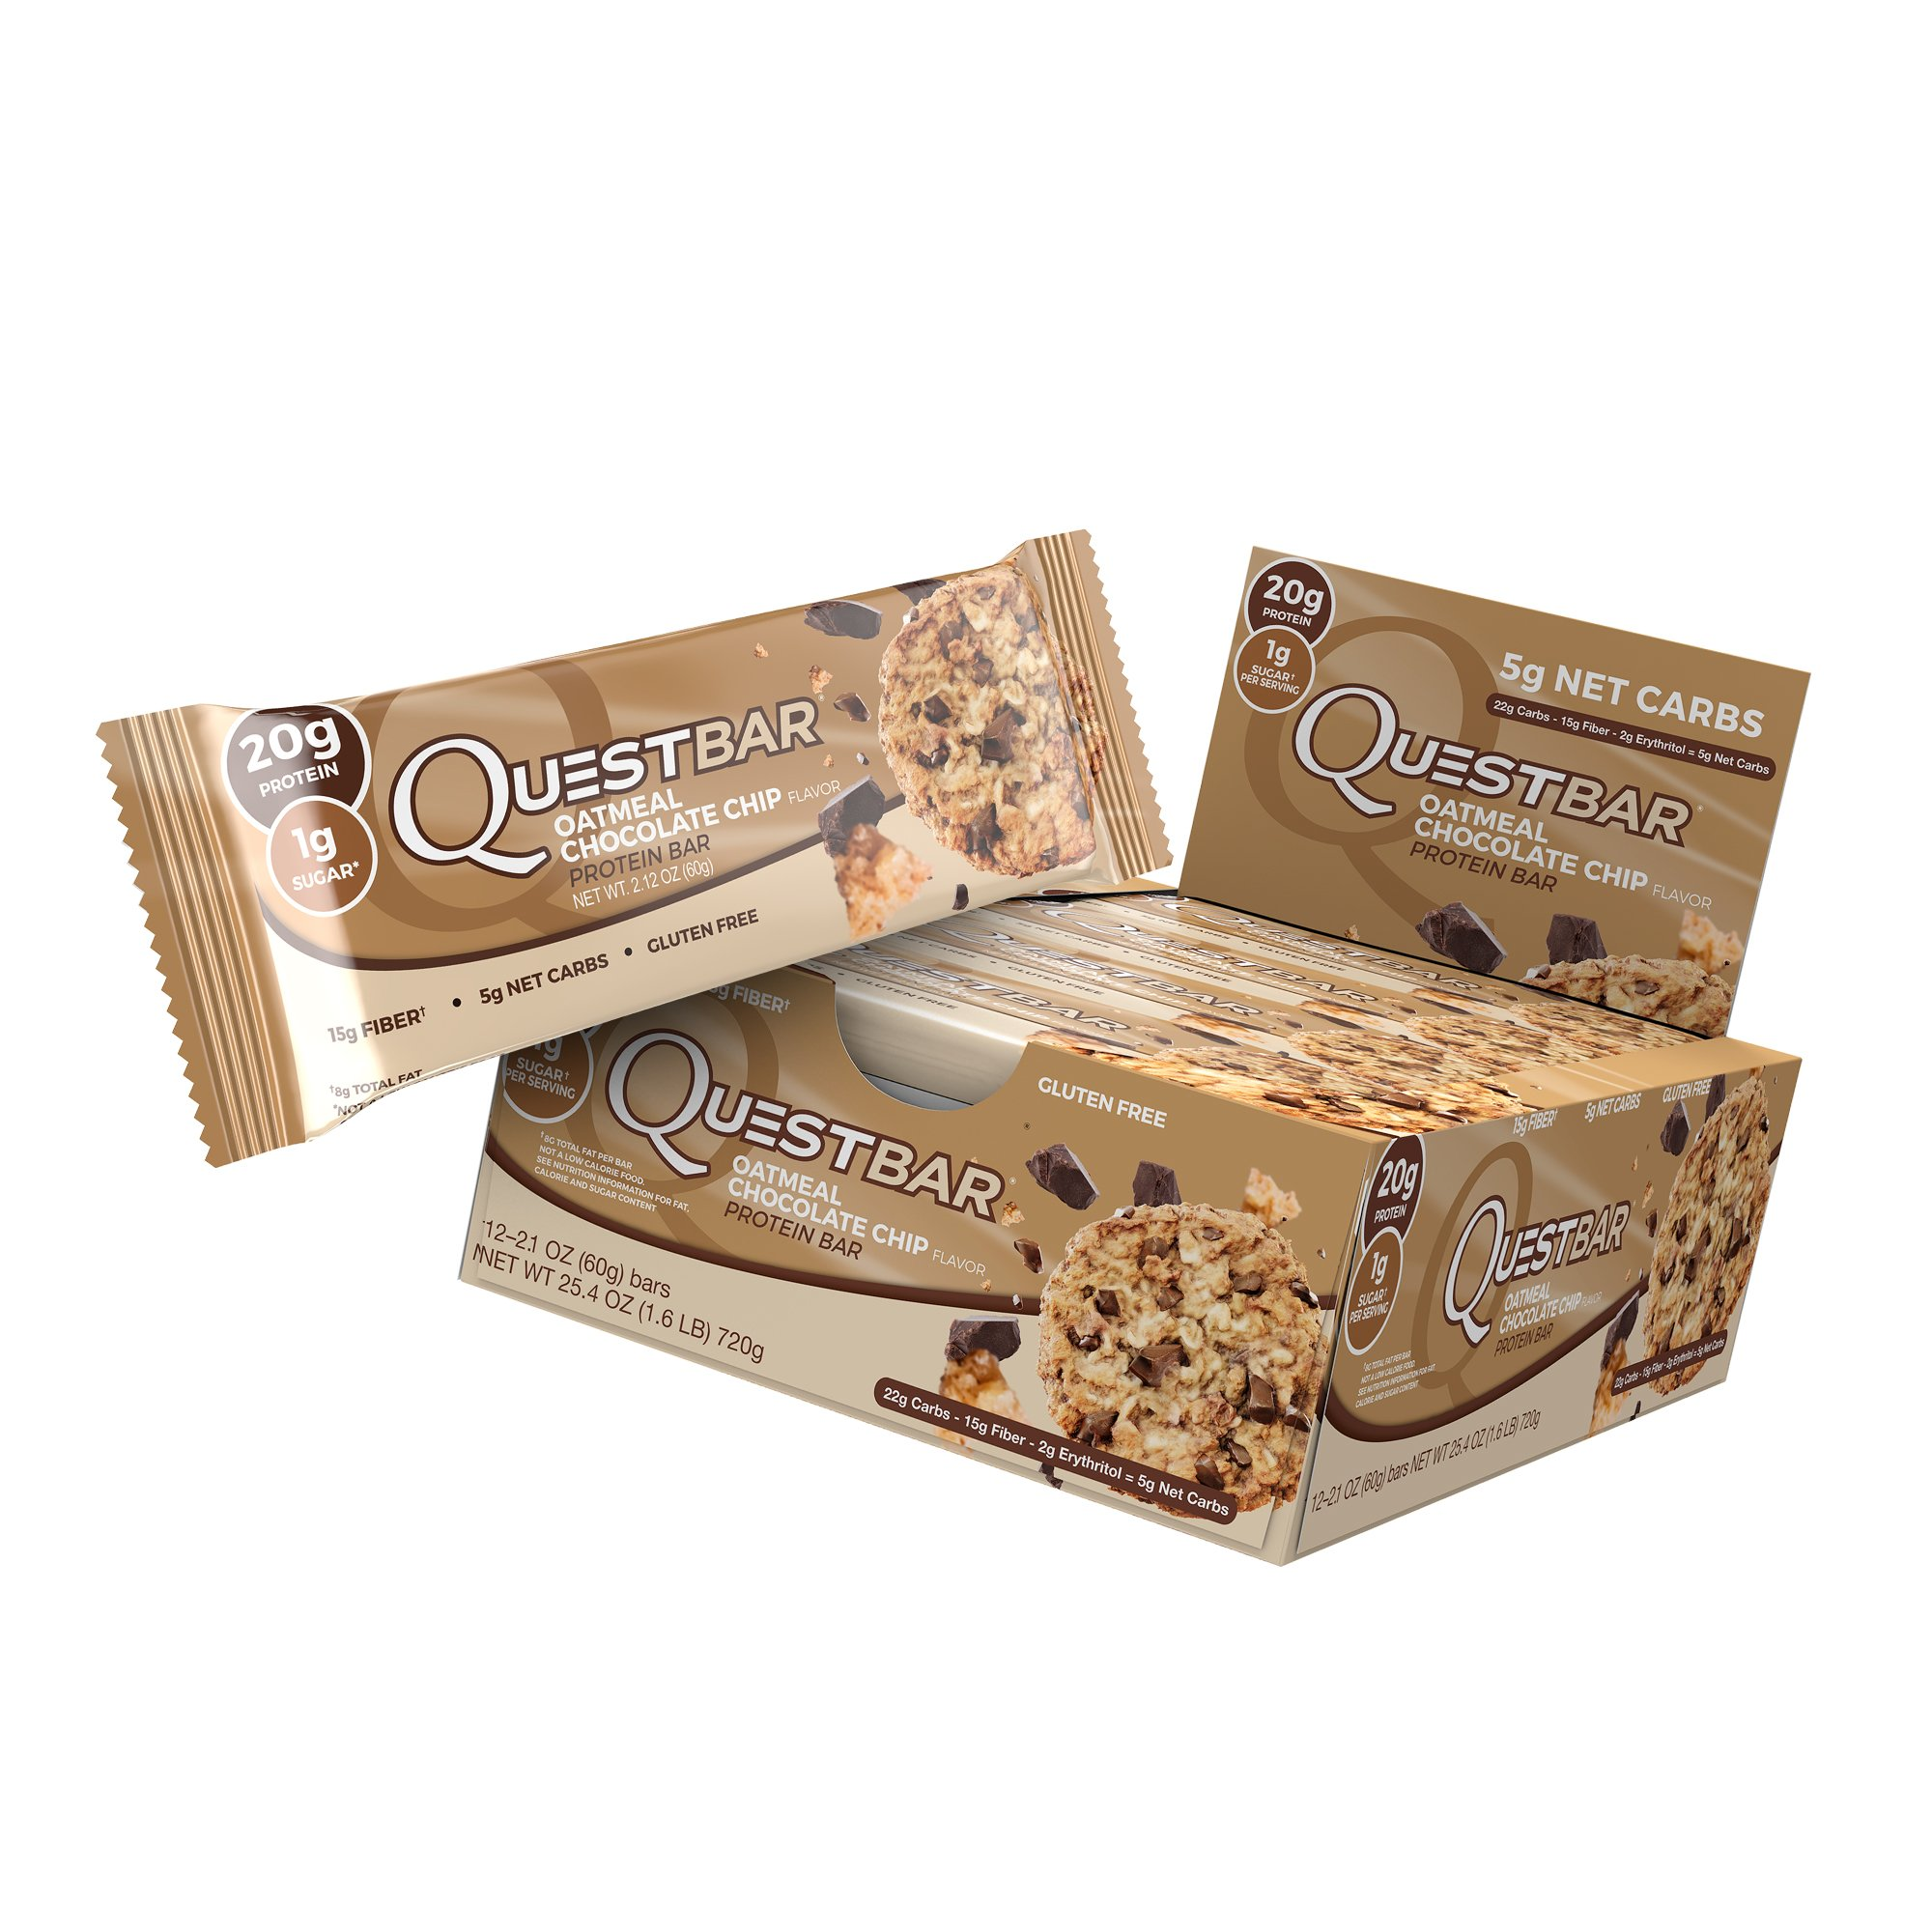 Quest Nutrition Protein Bar, Oatmeal Chocolate Chip, 20g Protein, 5g Net Carbs, 190 Cals, High Protein Bars, Low Carb Bars, Soy Free, 2.1 oz Bar, 12 Count